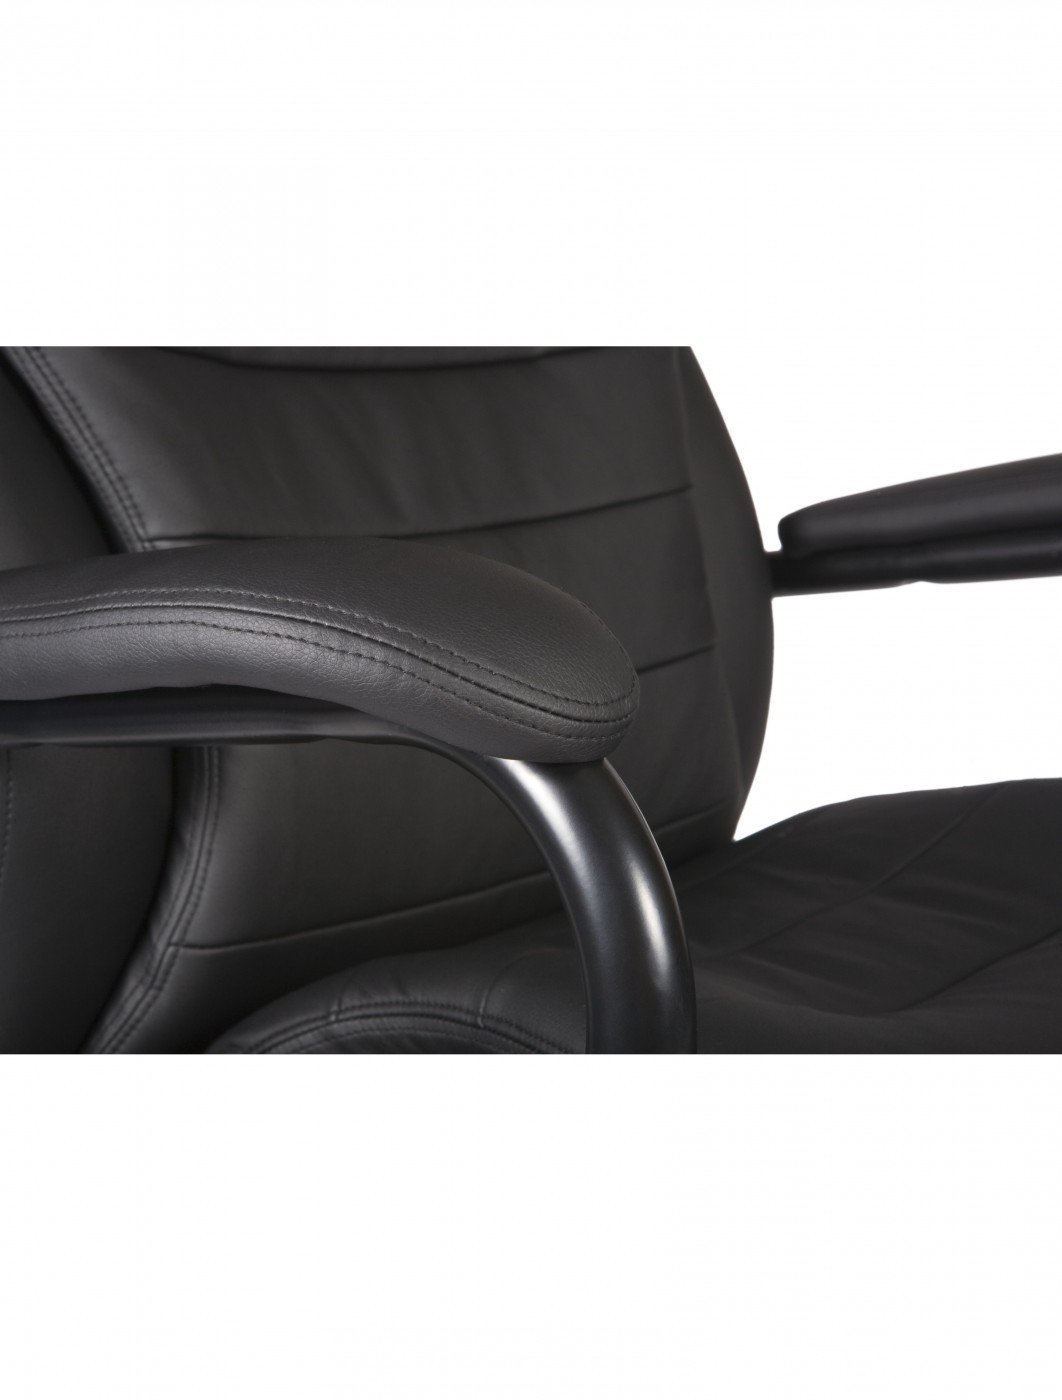 heavy duty gaming chair back support cushion for office singapore chairs computer goliath b991 121